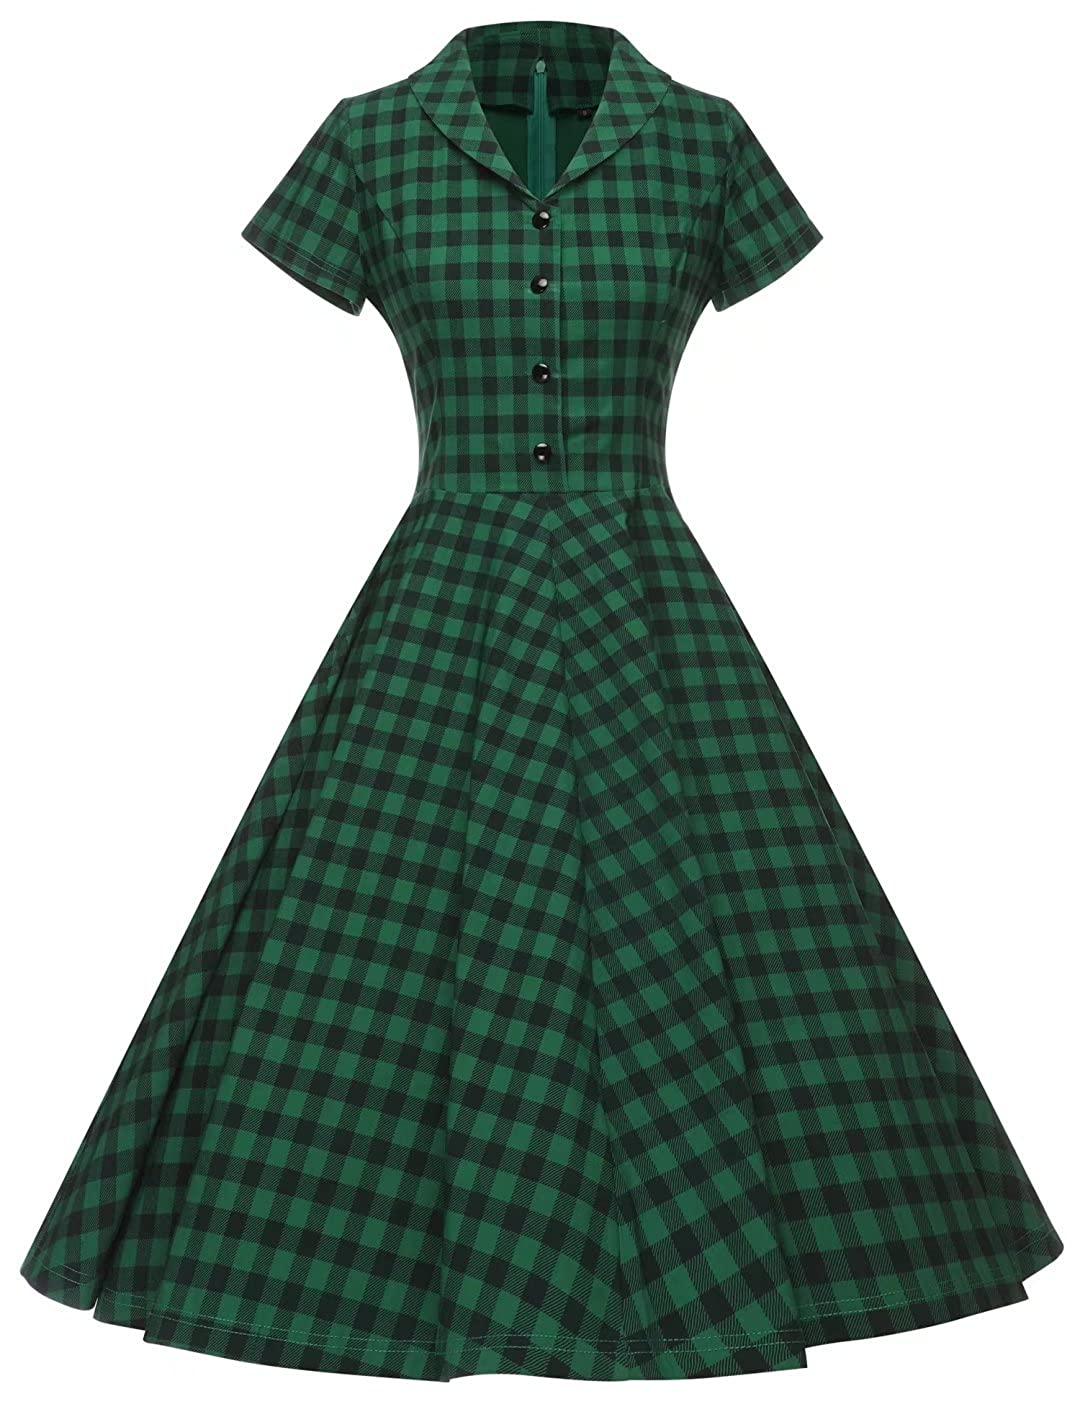 1960s Mad Men Dresses and Clothing Styles GownTown Womens 1950s Vintage Cap Sleeve Plaid Swing Dress with Pockets $38.98 AT vintagedancer.com